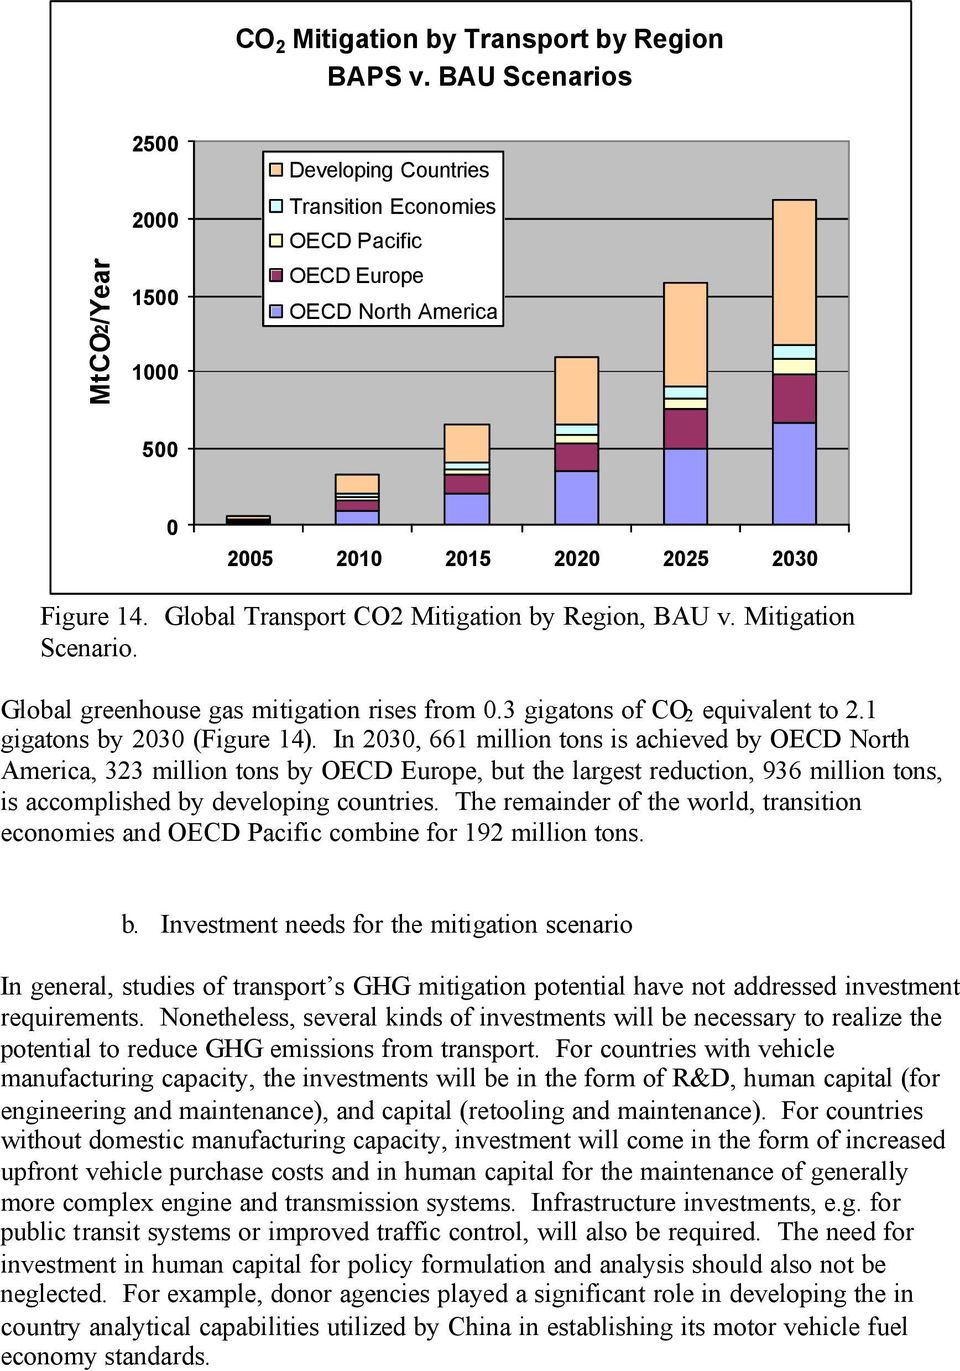 Global Transport CO2 Mitigation by Region, BAU v. Mitigation Scenario. Global greenhouse gas mitigation rises from 0.3 gigatons of CO 2 equivalent to 2.1 gigatons by 2030 (Figure 14).